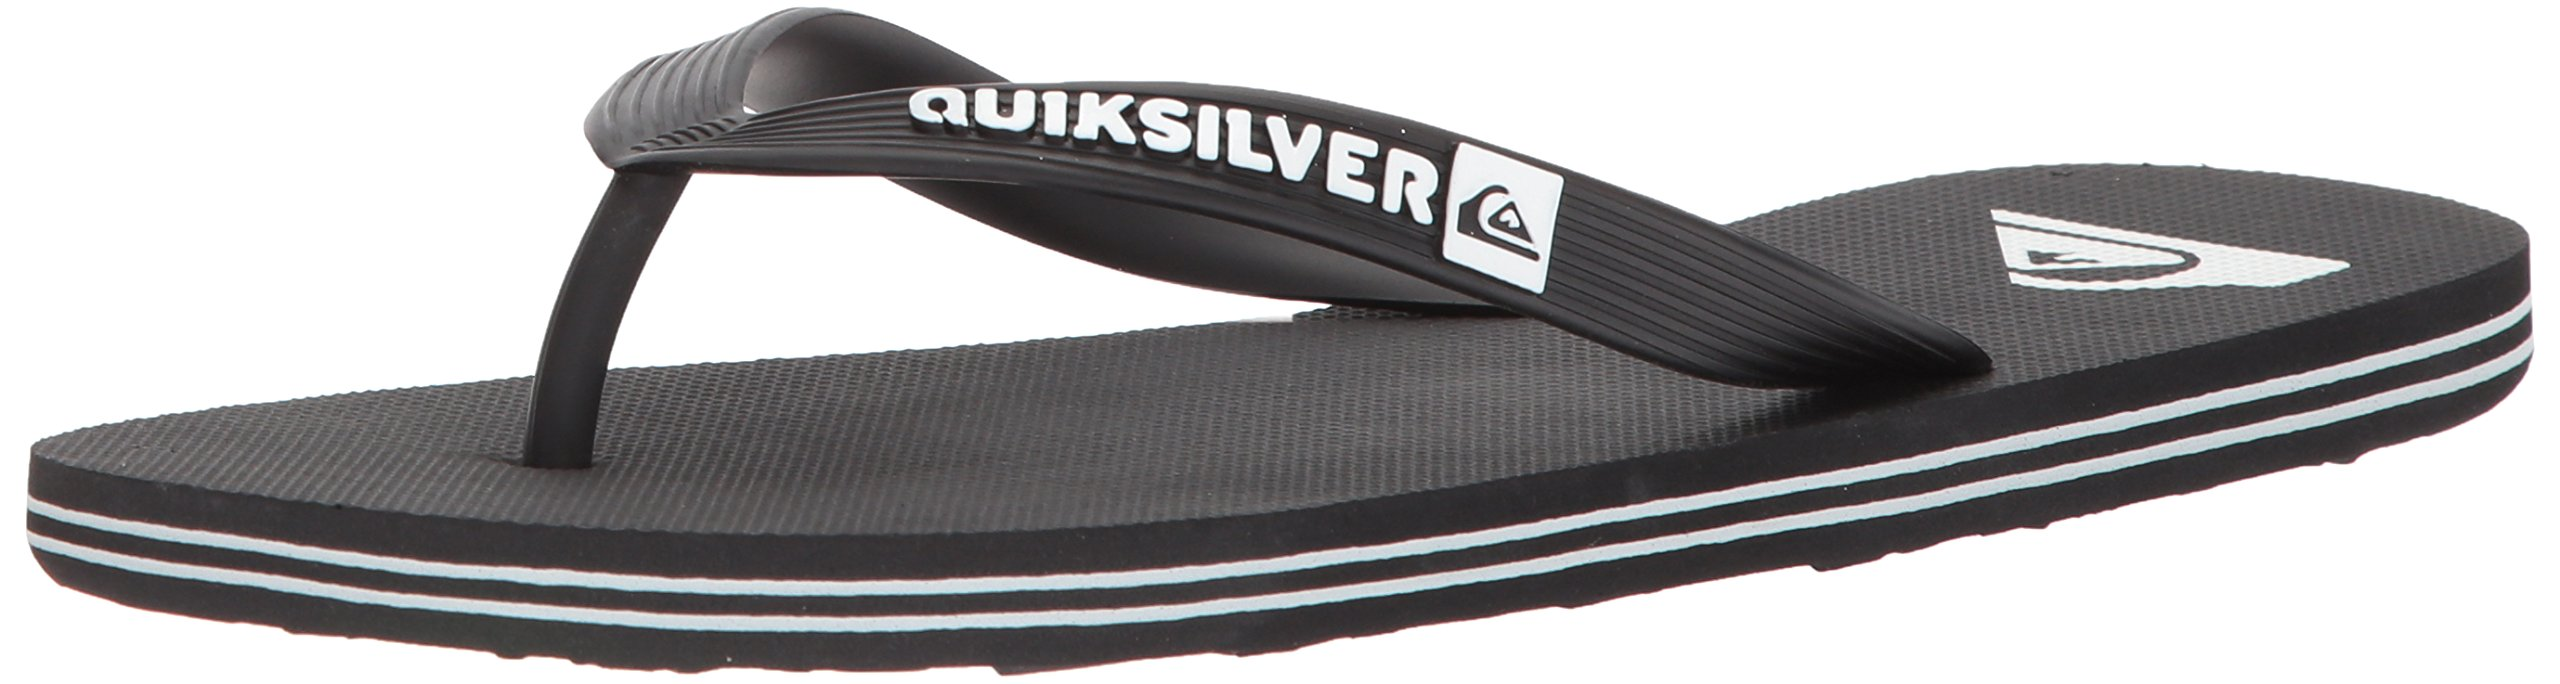 Quiksilver Men's Molokai Sandal Black/White, 10 M US